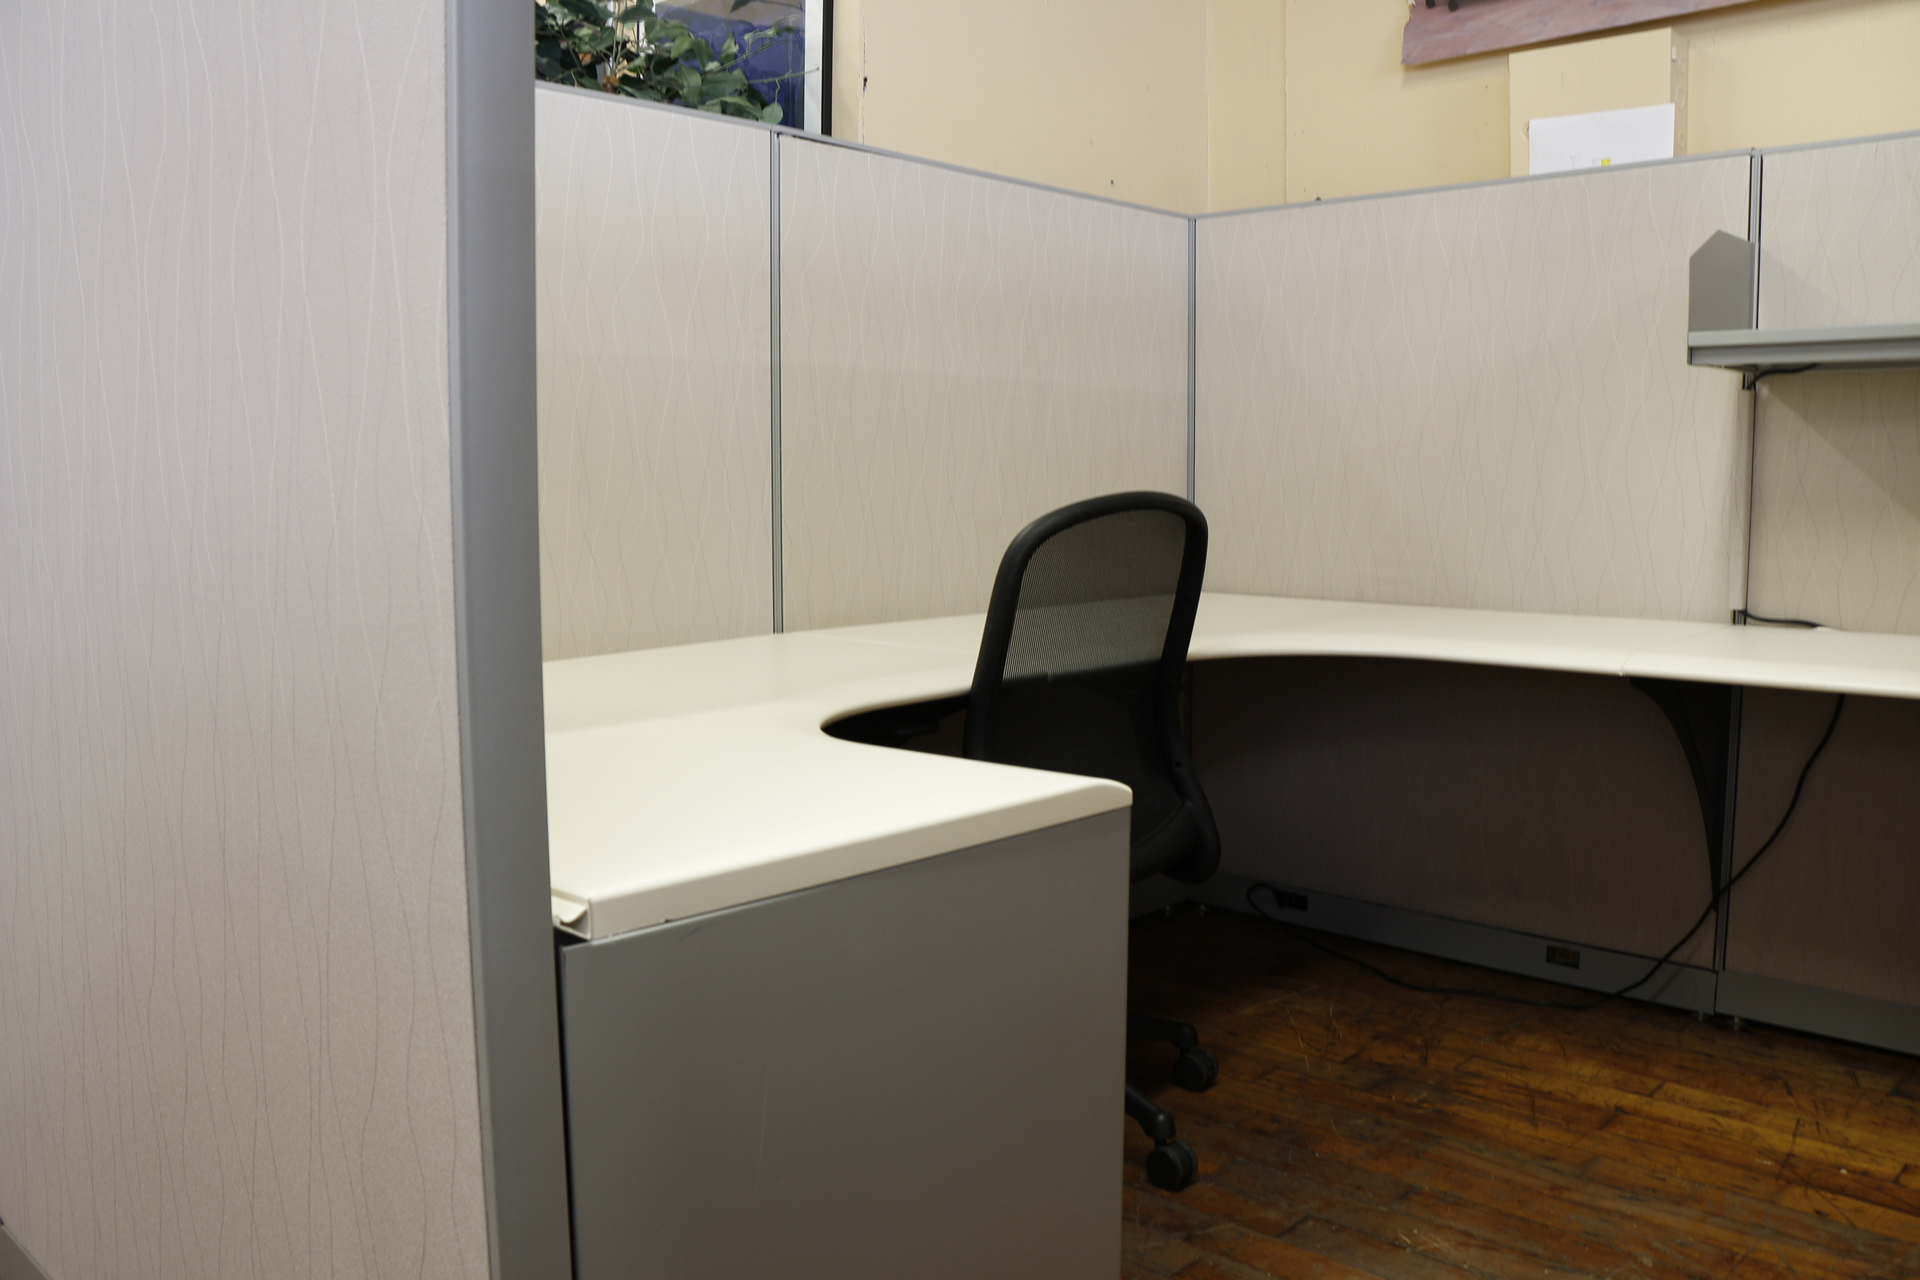 peartreeofficefurniture_peartreeofficefurniture_mg_4409.jpg